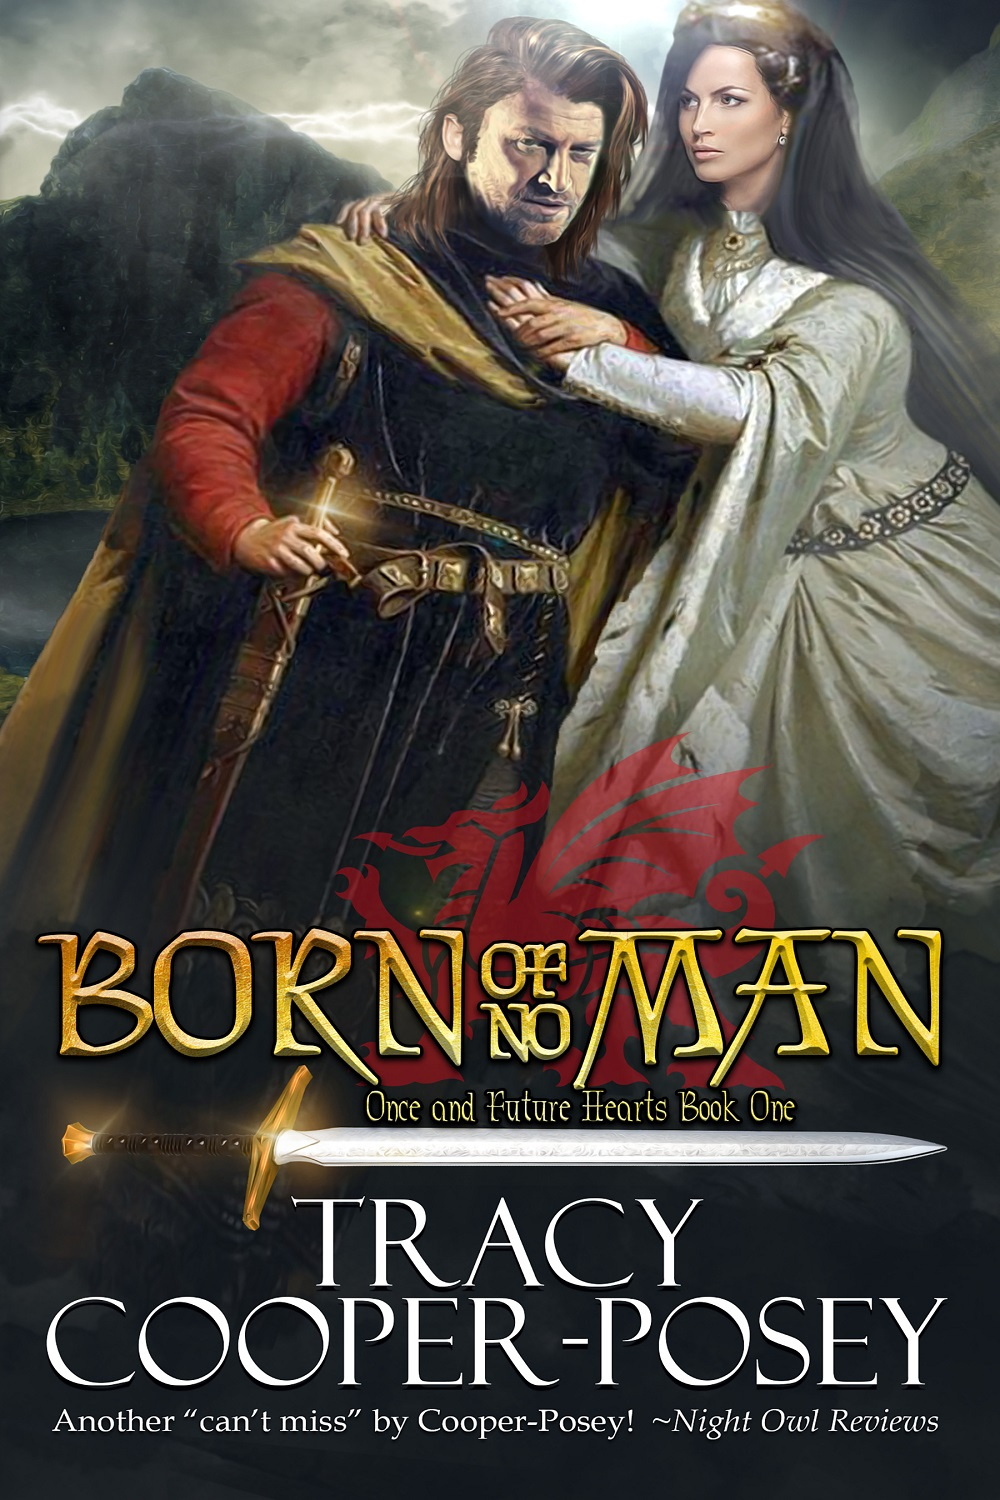 Royal Wedding Sale on Kobo